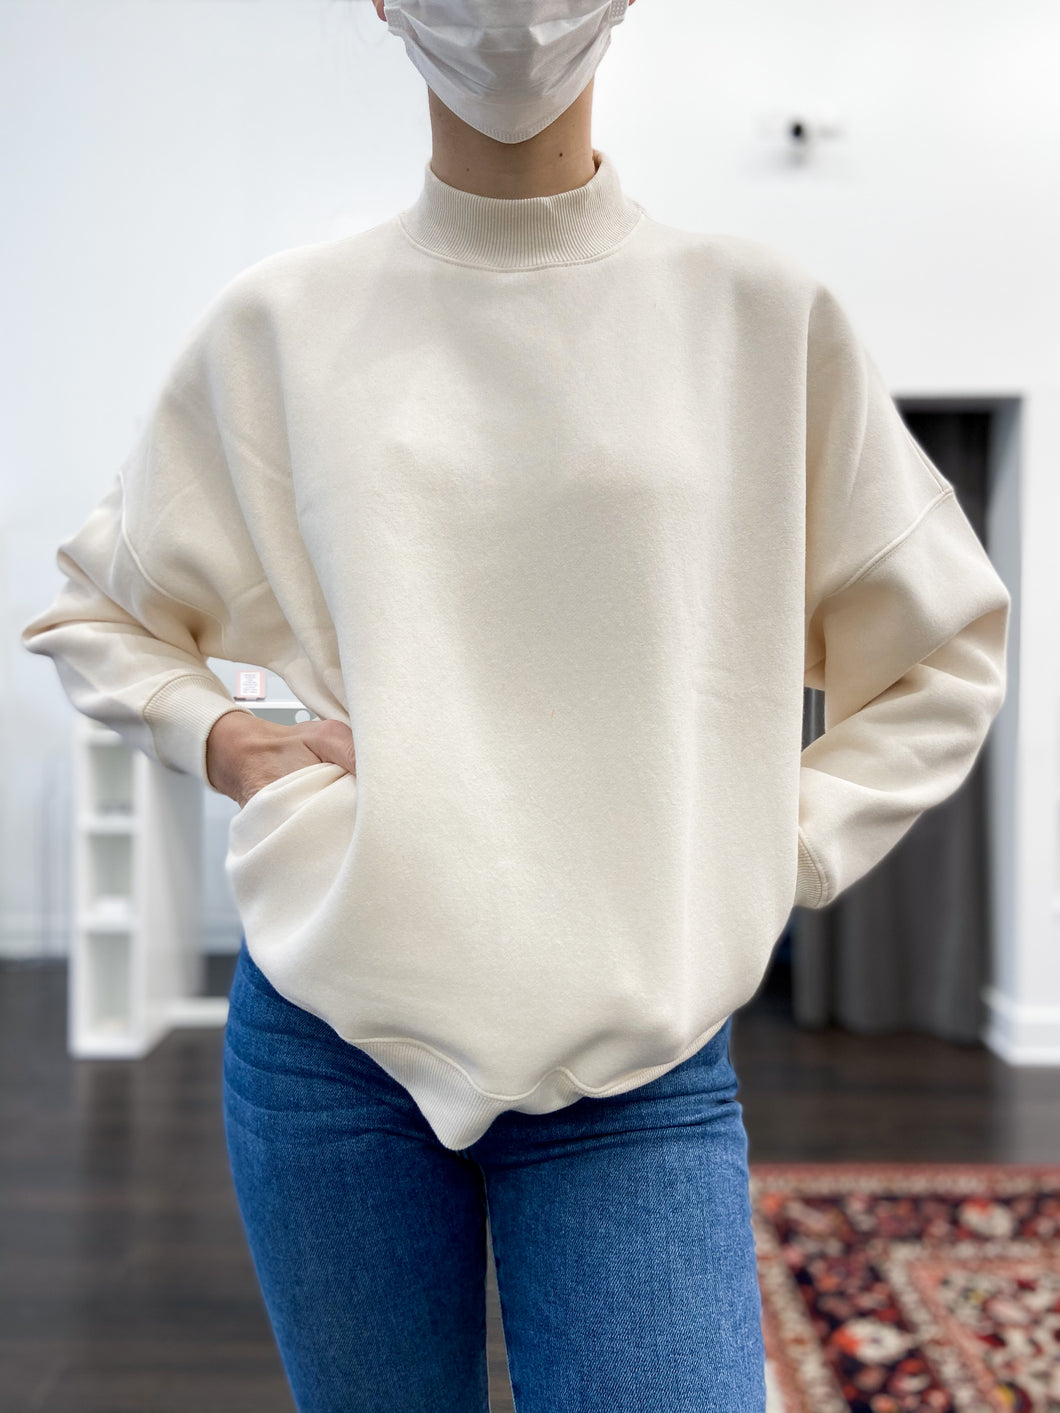 Troy Sweatshirt in Cream - FINAL SALE